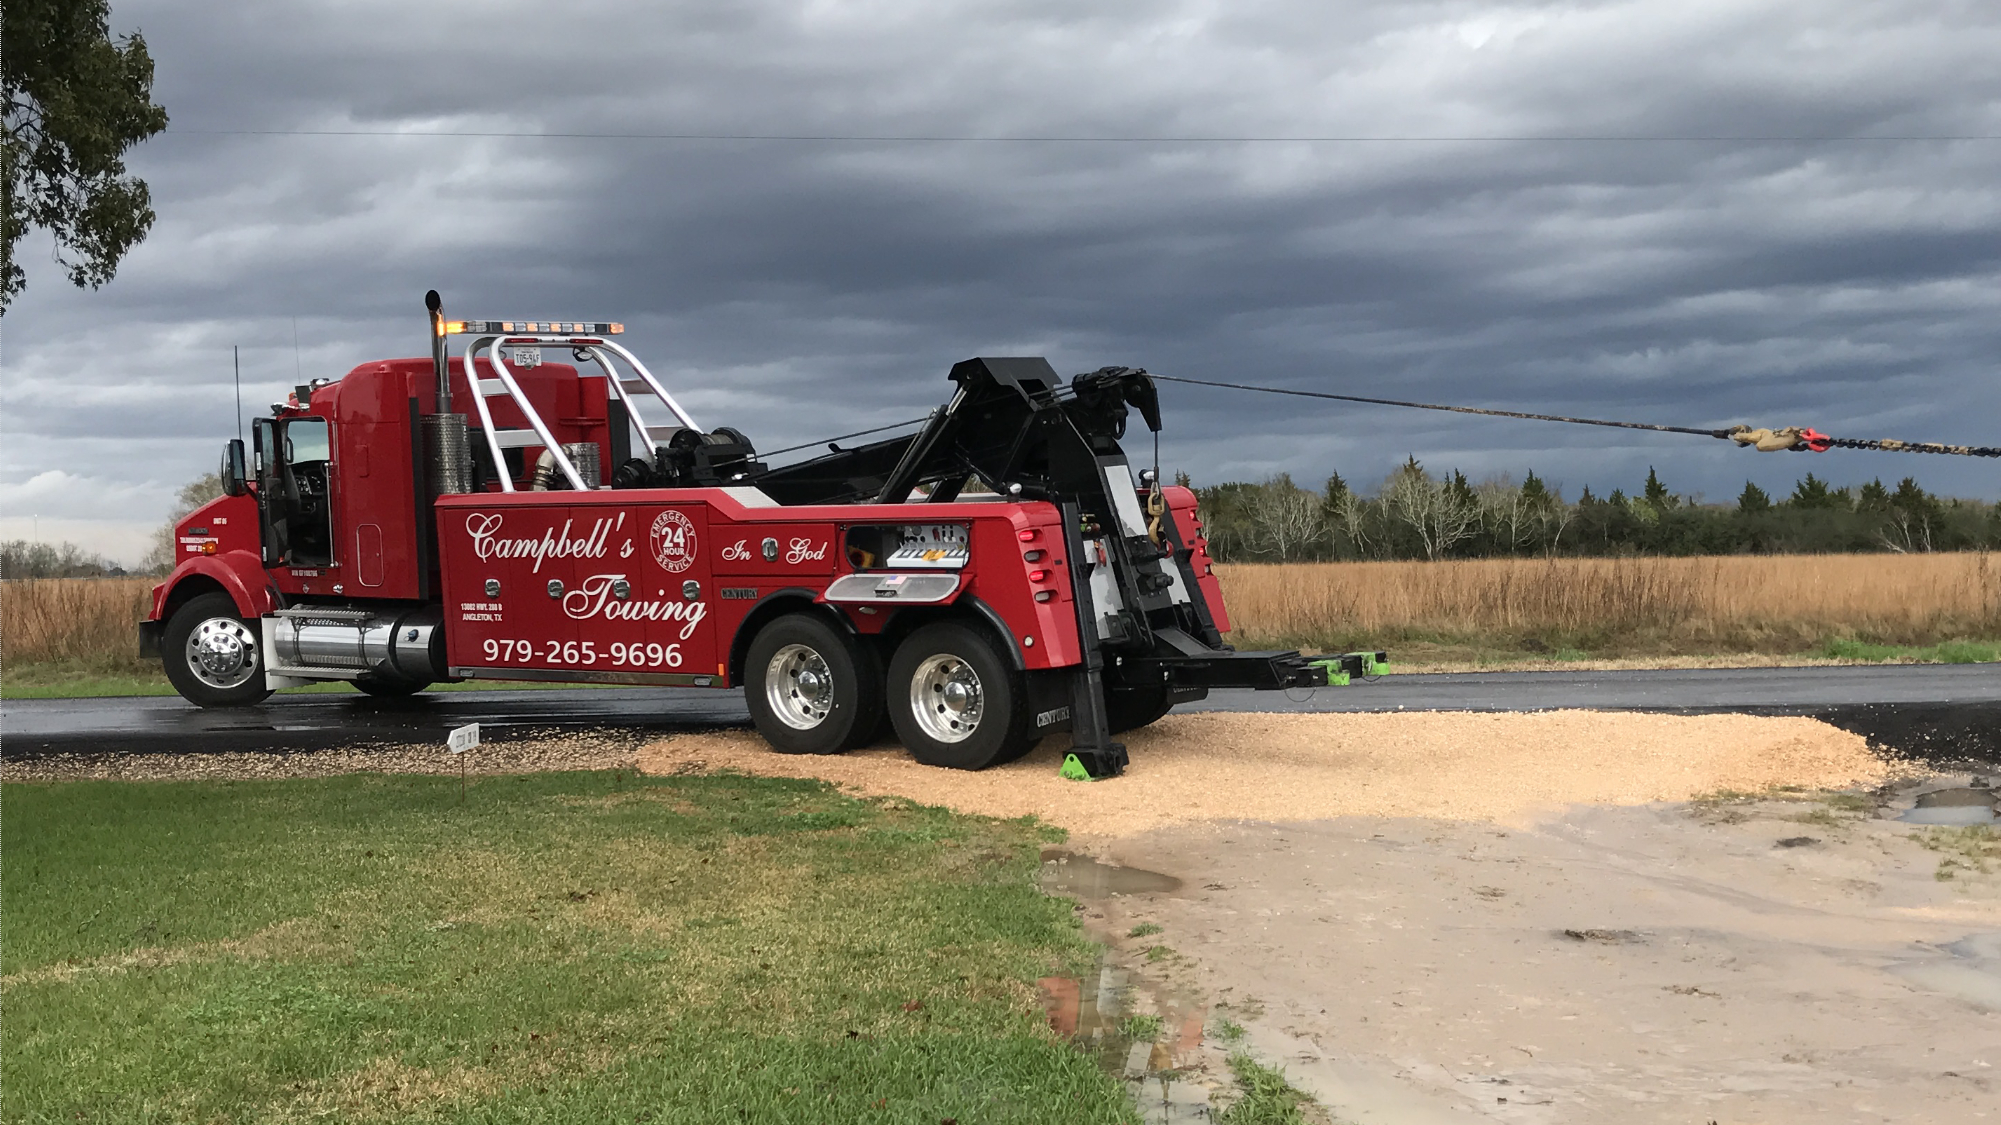 Campbell's Towing